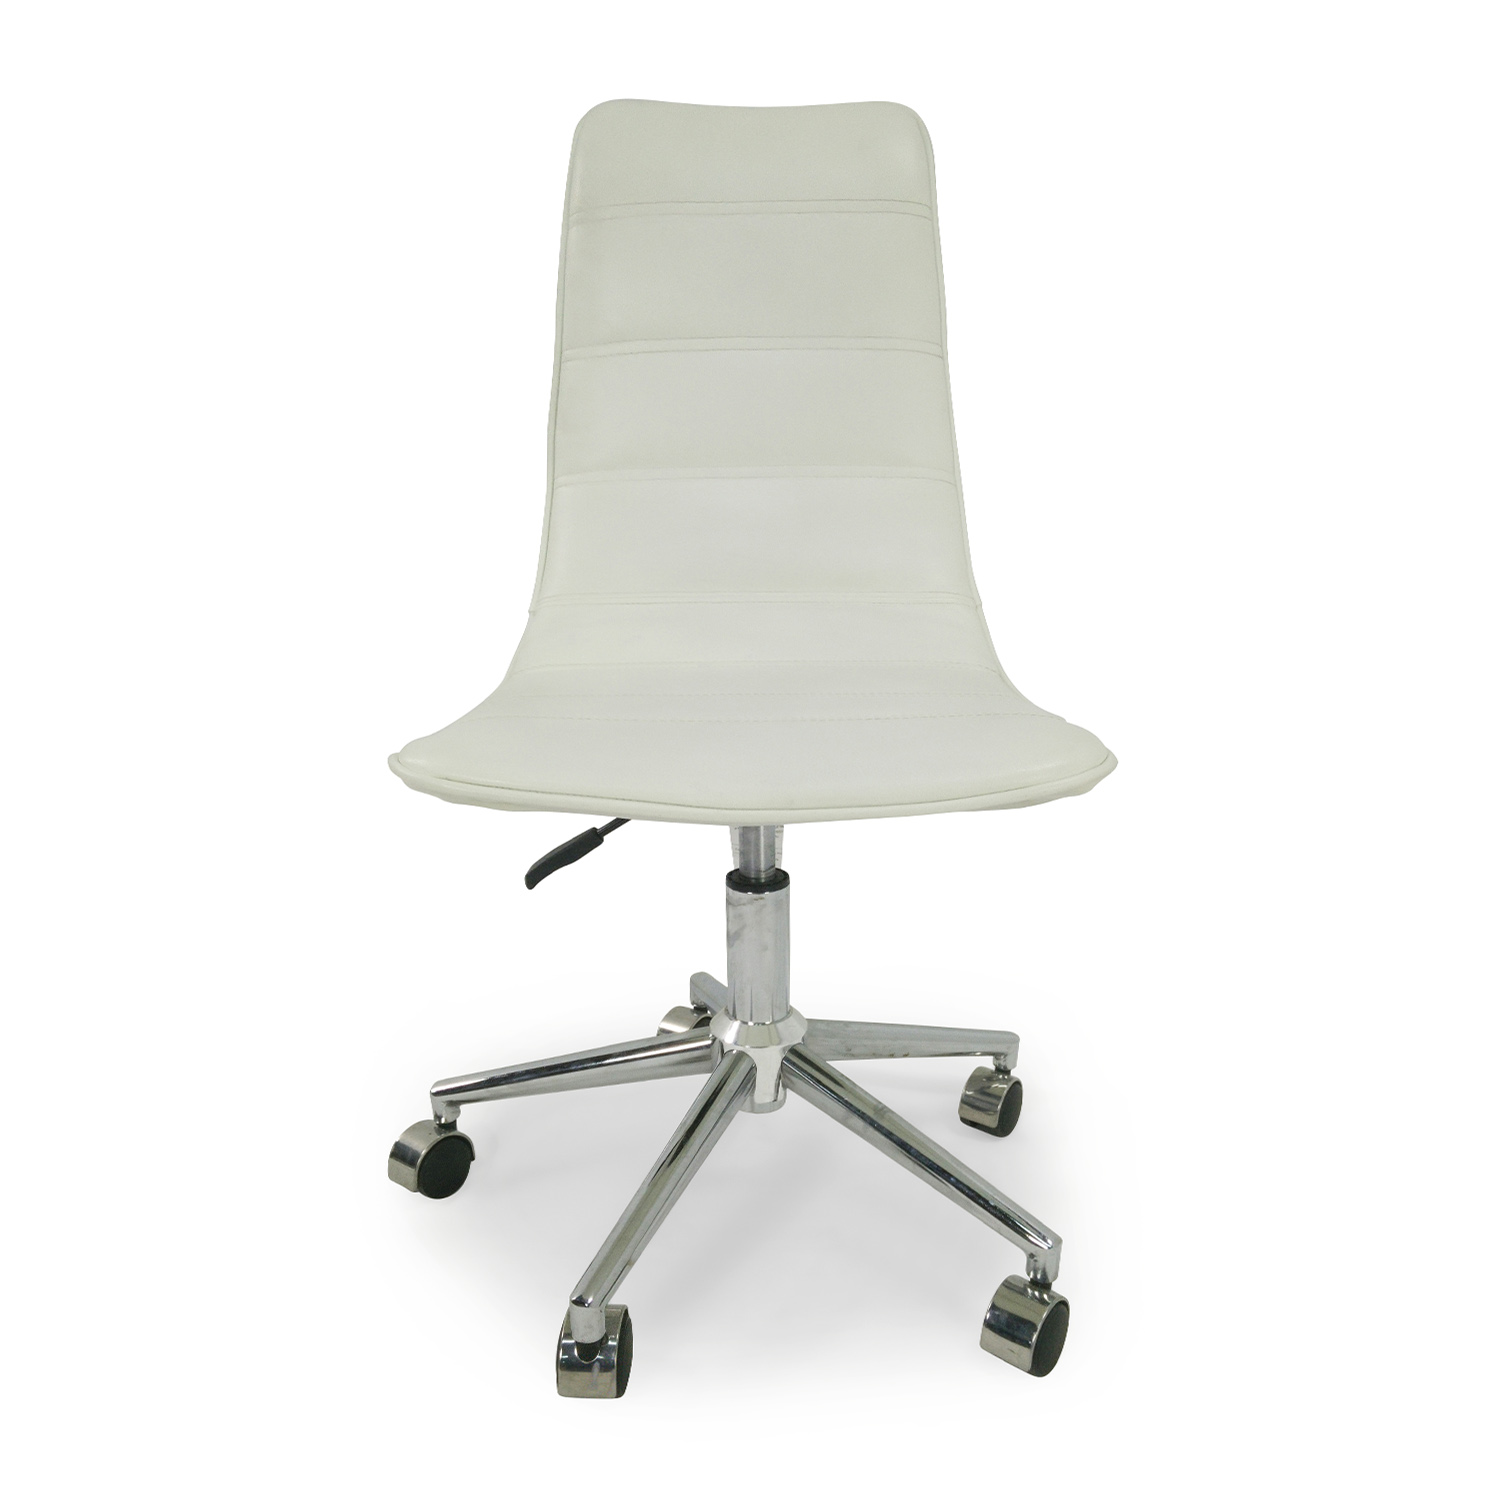 Zuo Modern Swivel Chair / Chairs